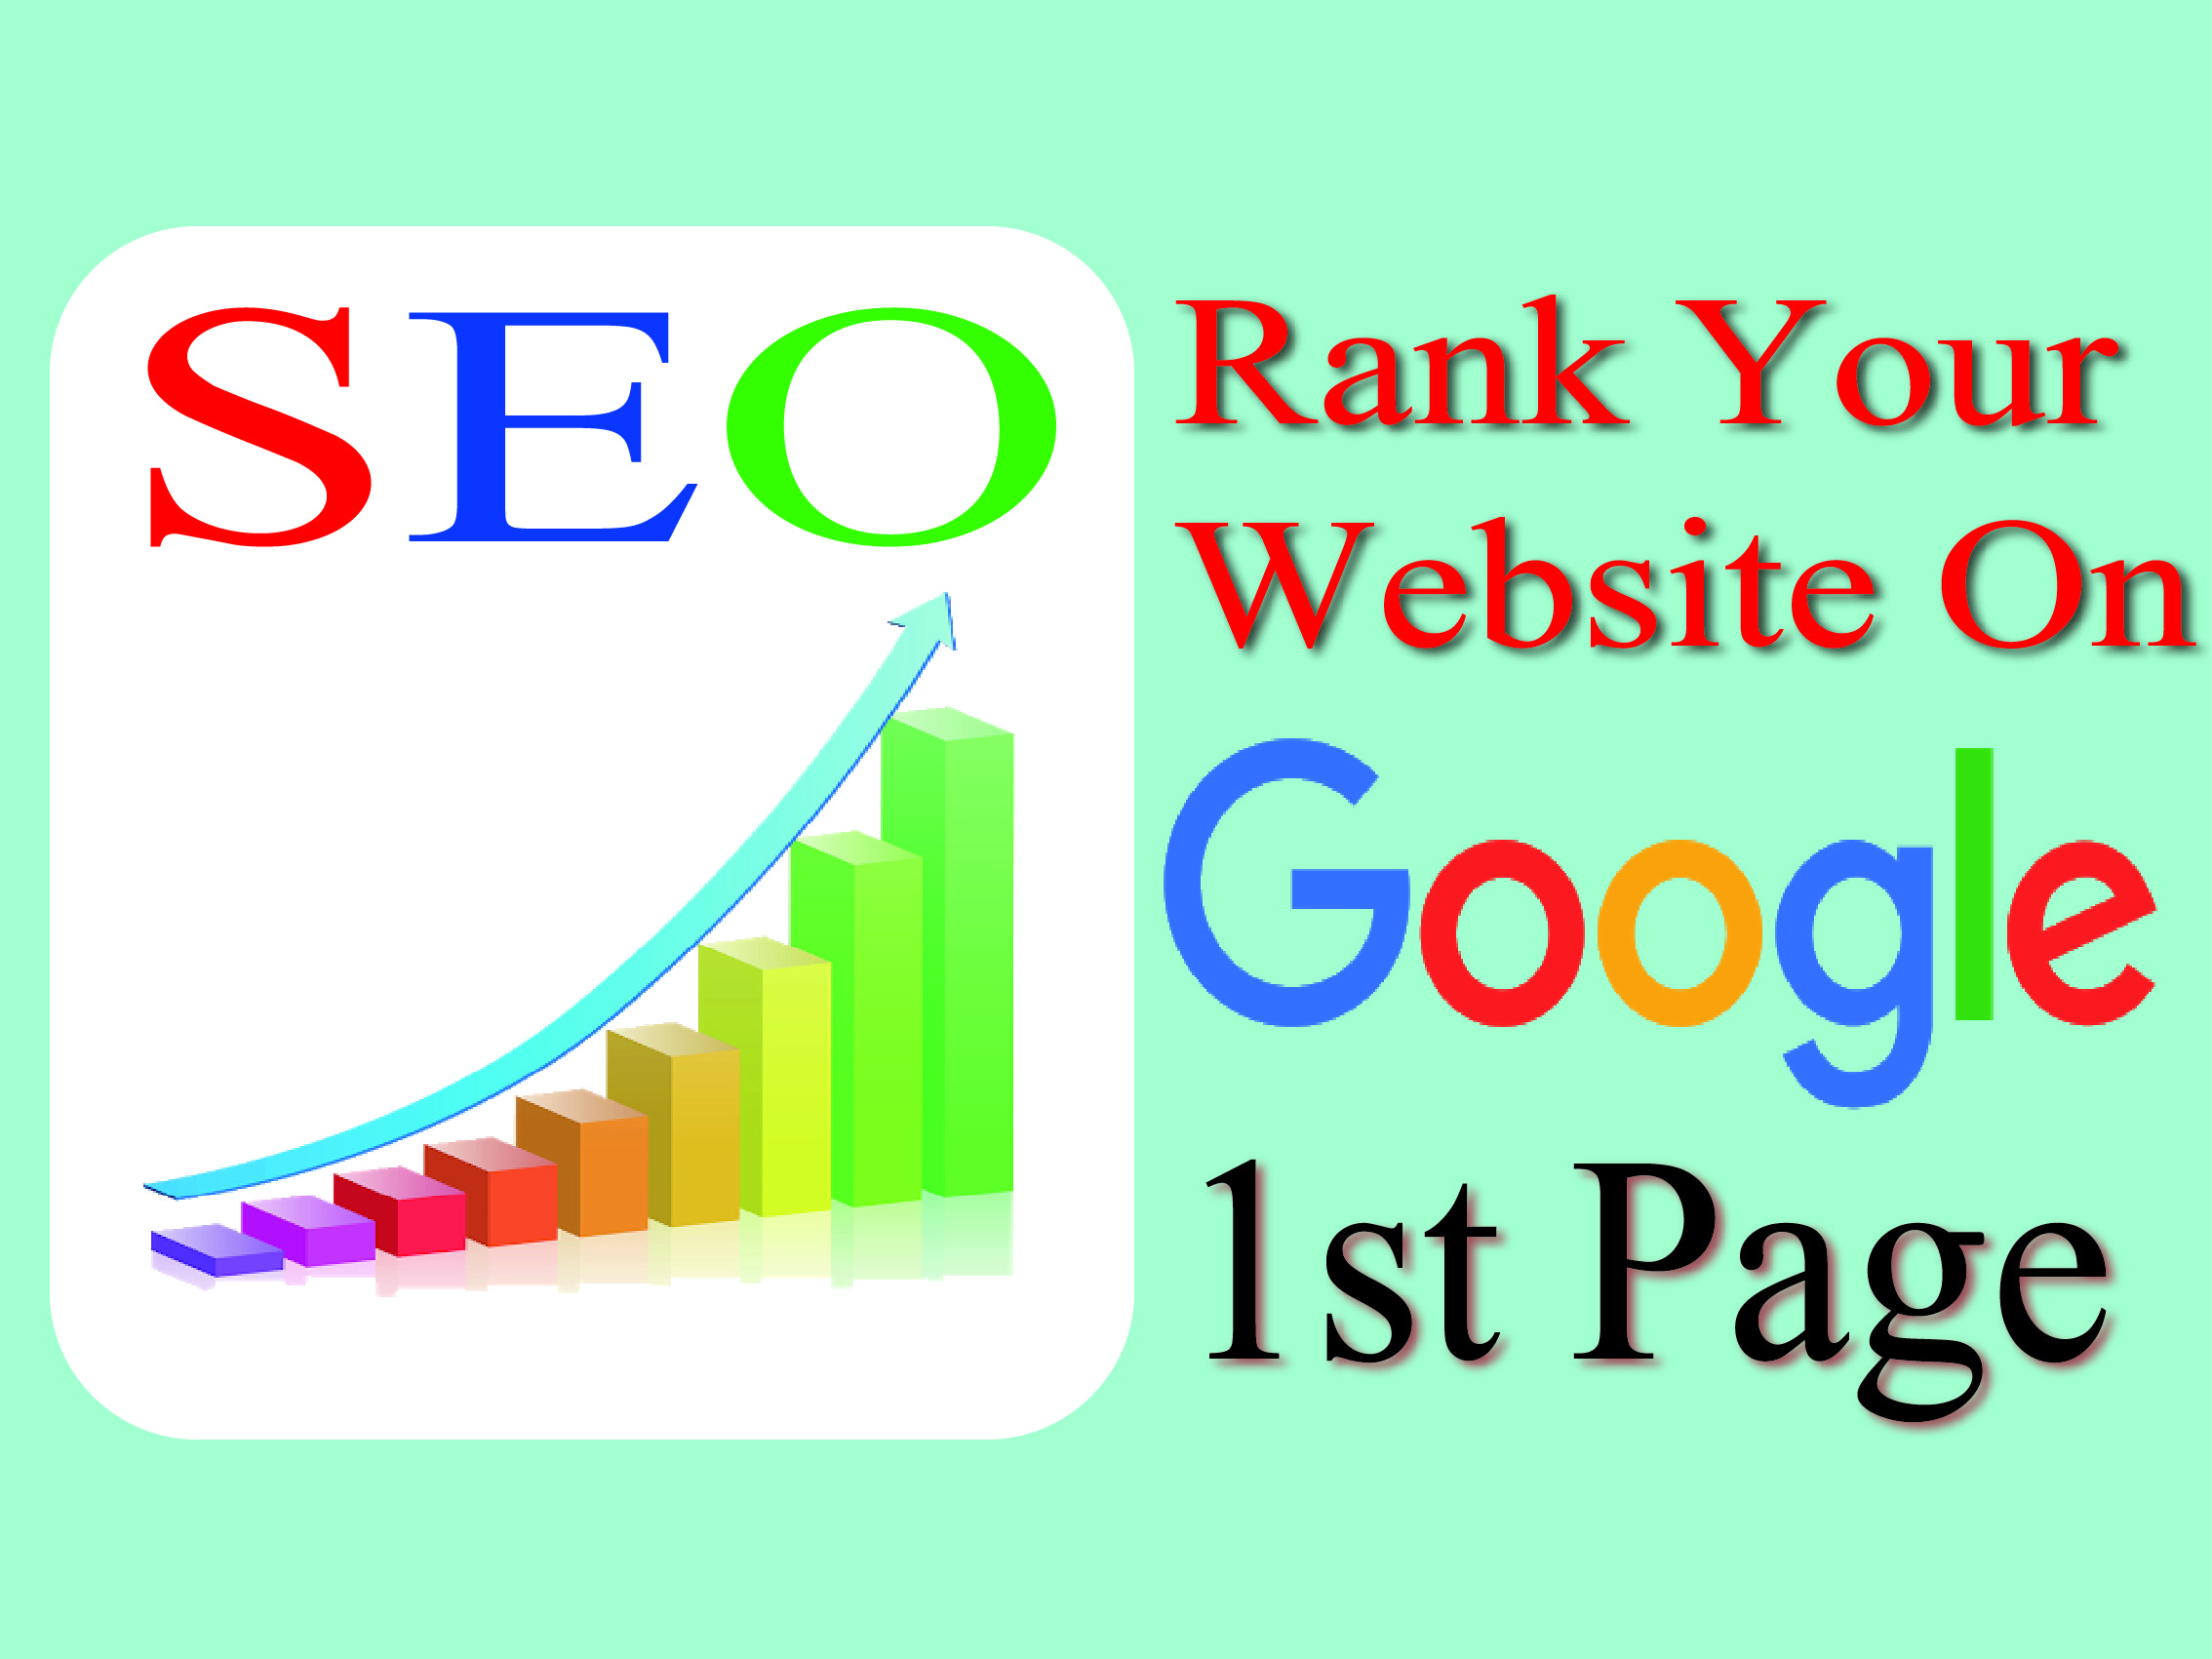 I will give you a complete monthly SEO service with backlinks for rank on GOOGLE first page